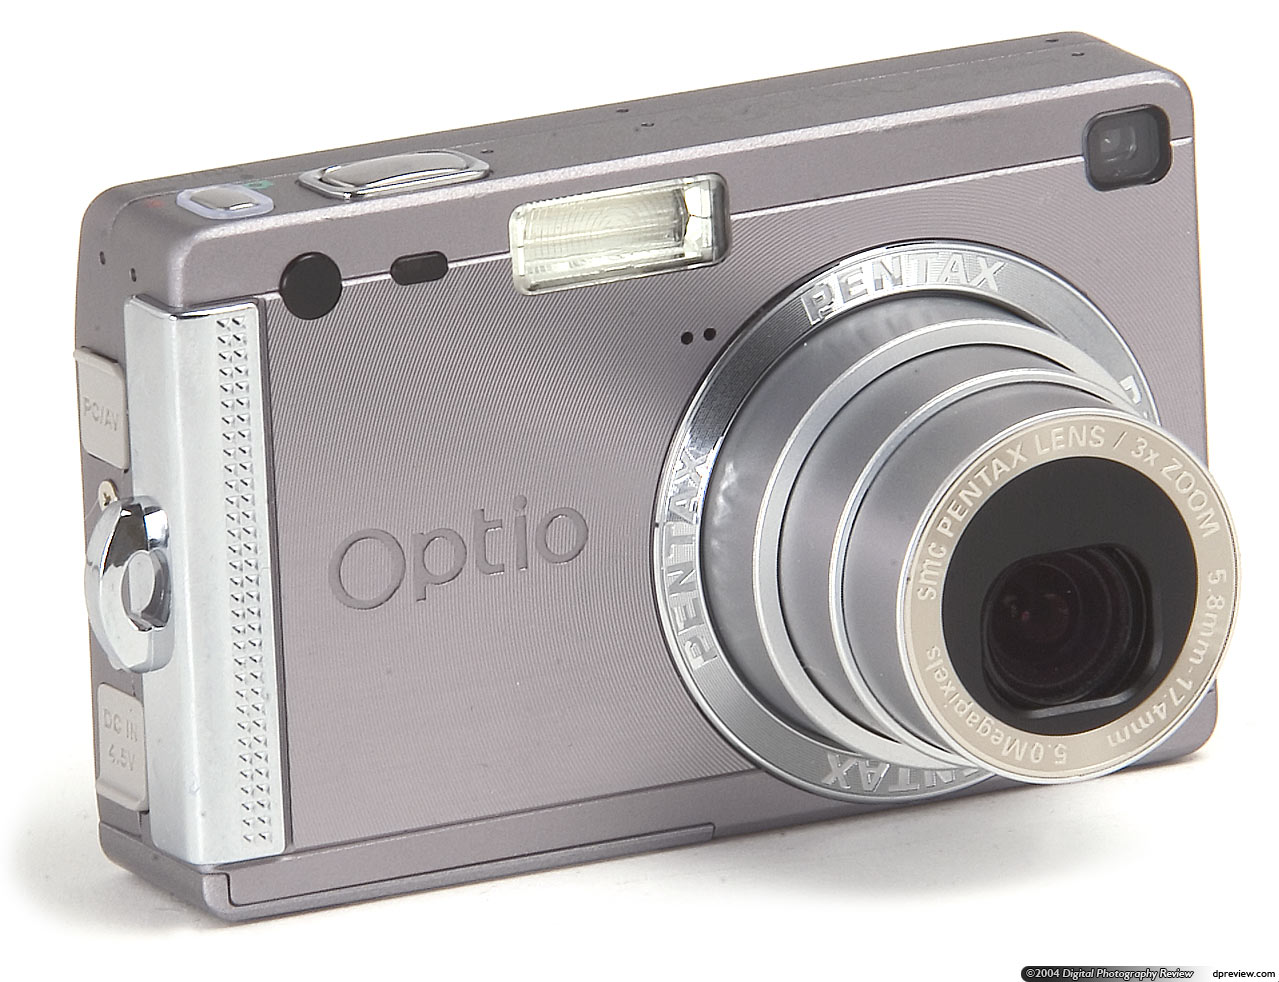 pentax optio s5i review digital photography review rh dpreview com Optio Pentax Swivel Pentax Optio Software